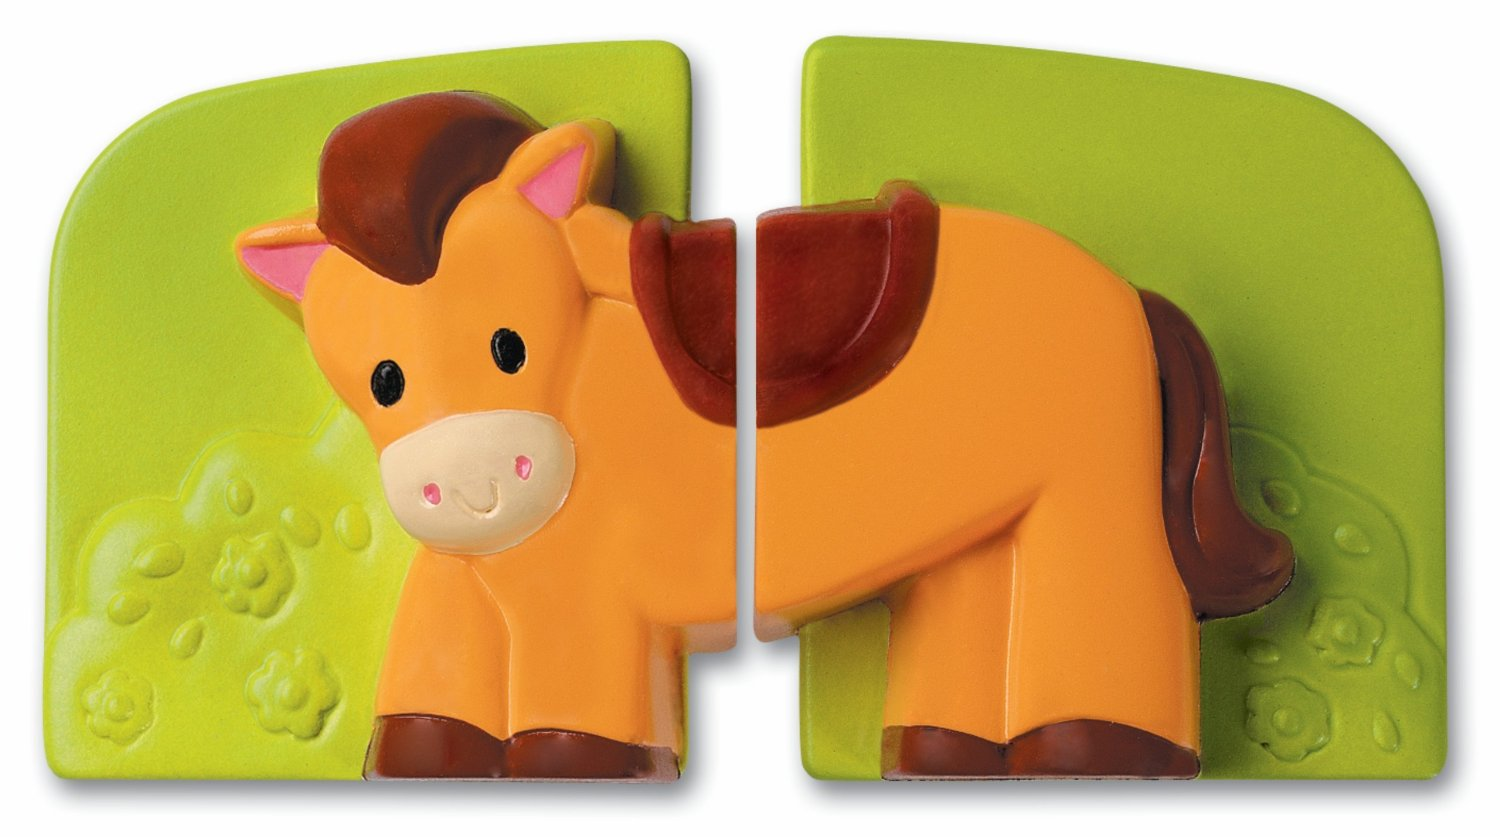 LeapFrog Fridge Farm Magnetic Animal Set toy review